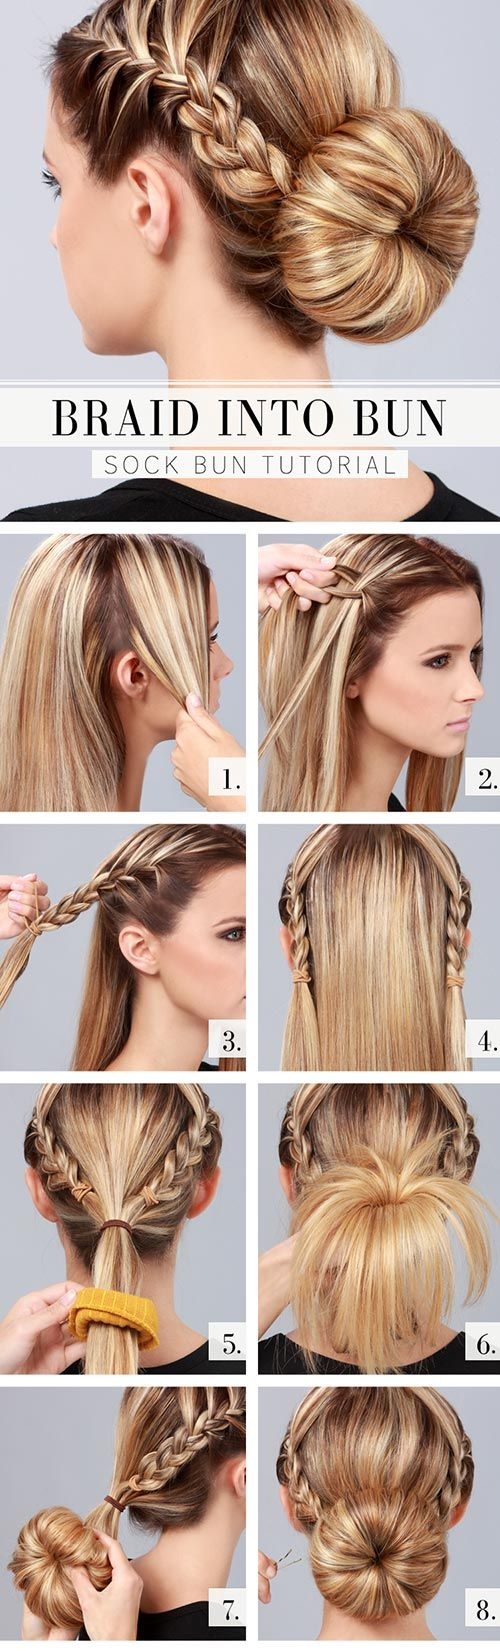 Simple Hairstyle Tutorials For Every Occasion #hairstyletutorials